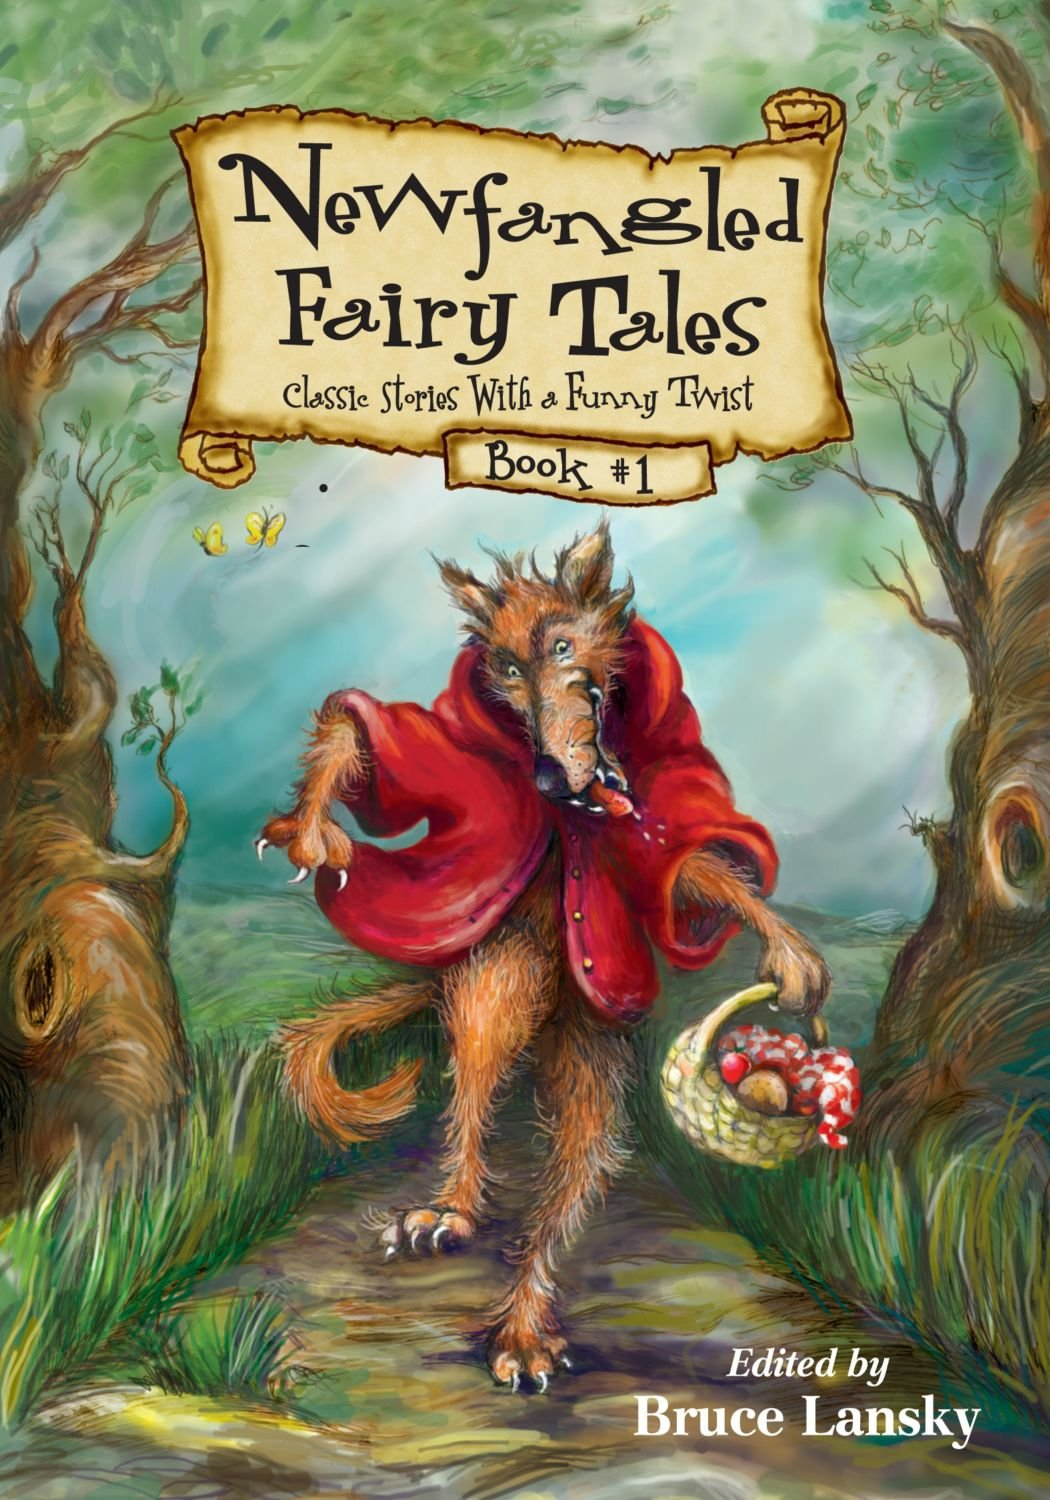 New Fangled Fairy Tales Book #2: Classic Stories With a Funny Twist (Newfangled Fairy Tales)